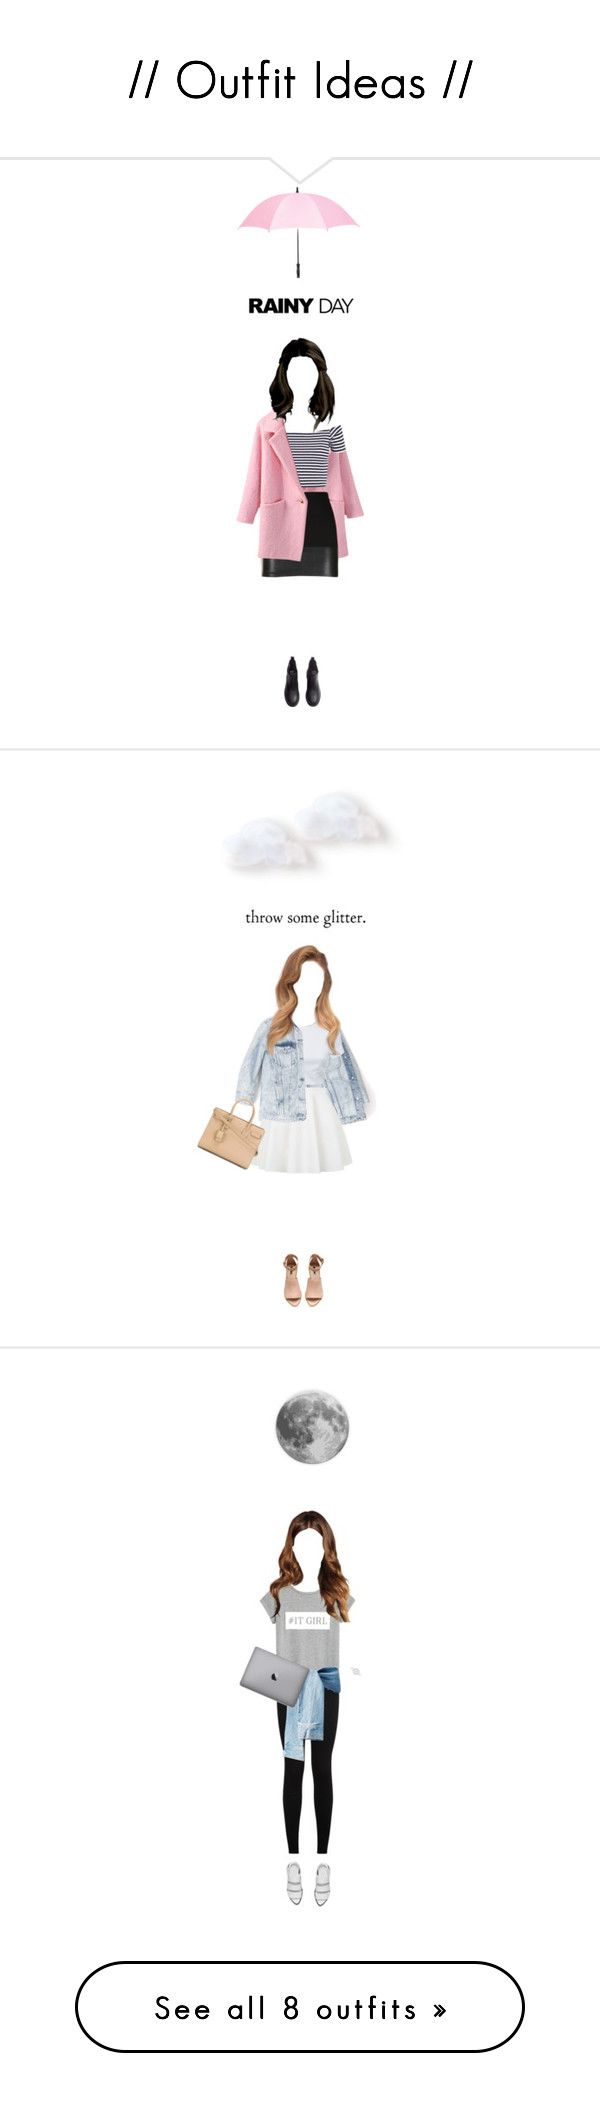 """// Outfit Ideas //"" by demigeorgia ❤ liked on Polyvore featuring Mode, Leighton, Bailey 44, H&M, AQ/AQ, Topshop, Yves Saint Laurent, MANGO, Alexander Wang und Skagen"